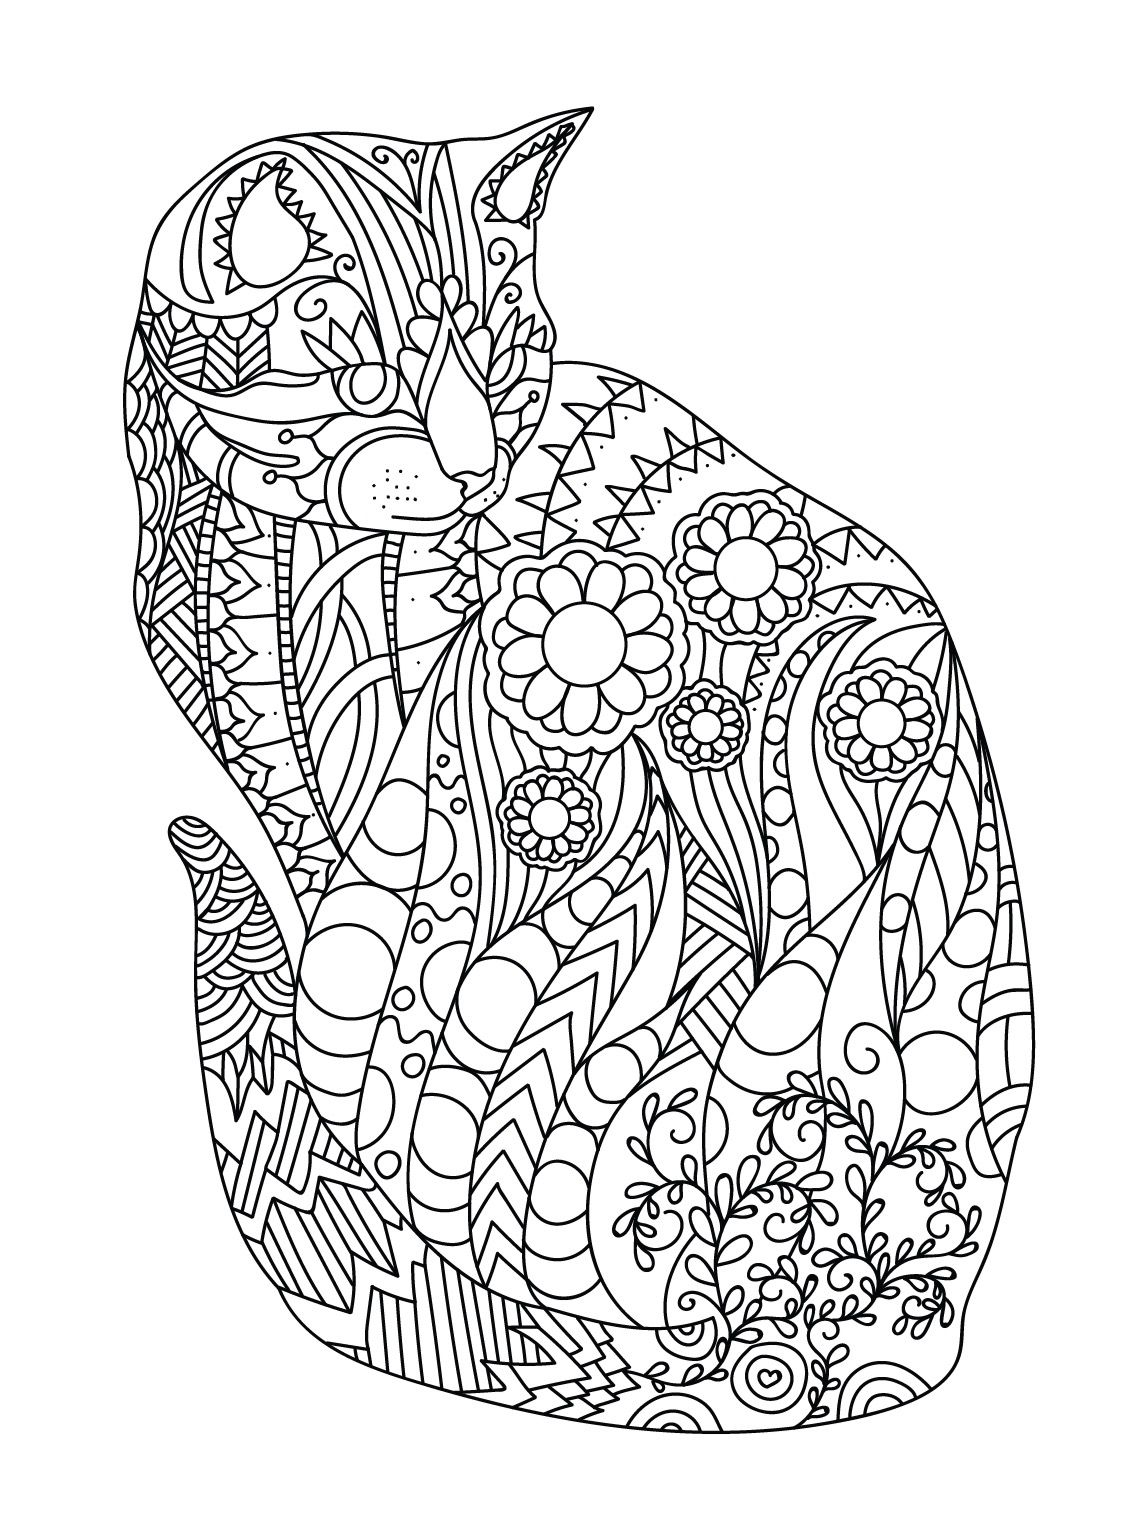 49 Zentangle : Inspiration To Get Started Tangling In 2020 · Craftwhack – Zentangle